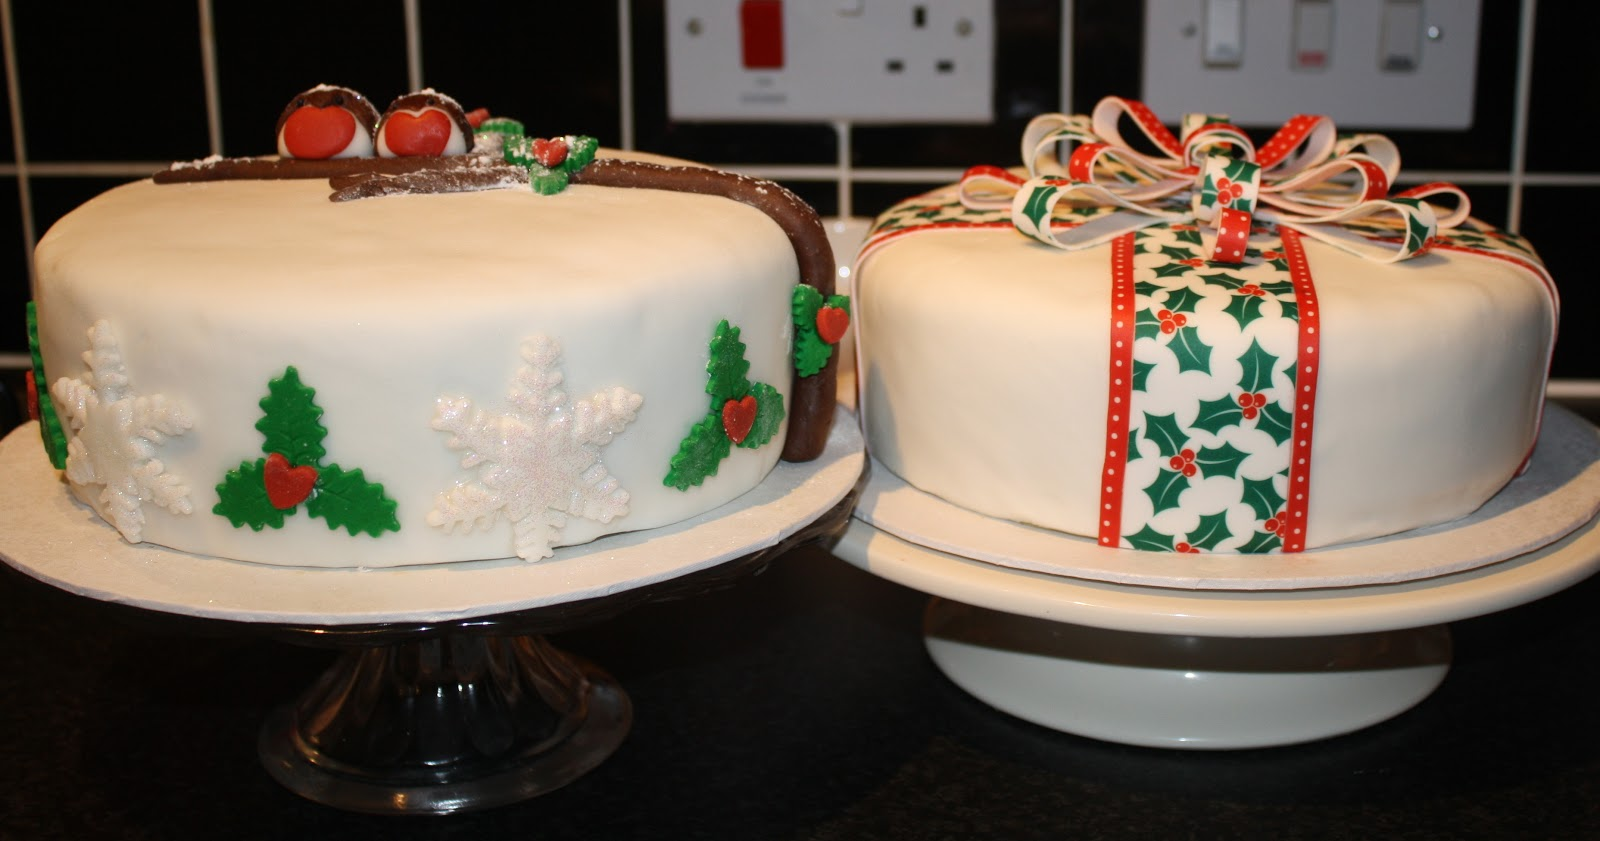 Cake Decorating Christmas Ideas : a million dresses UK Fashion and Lifestyle Blog: Sunday ...